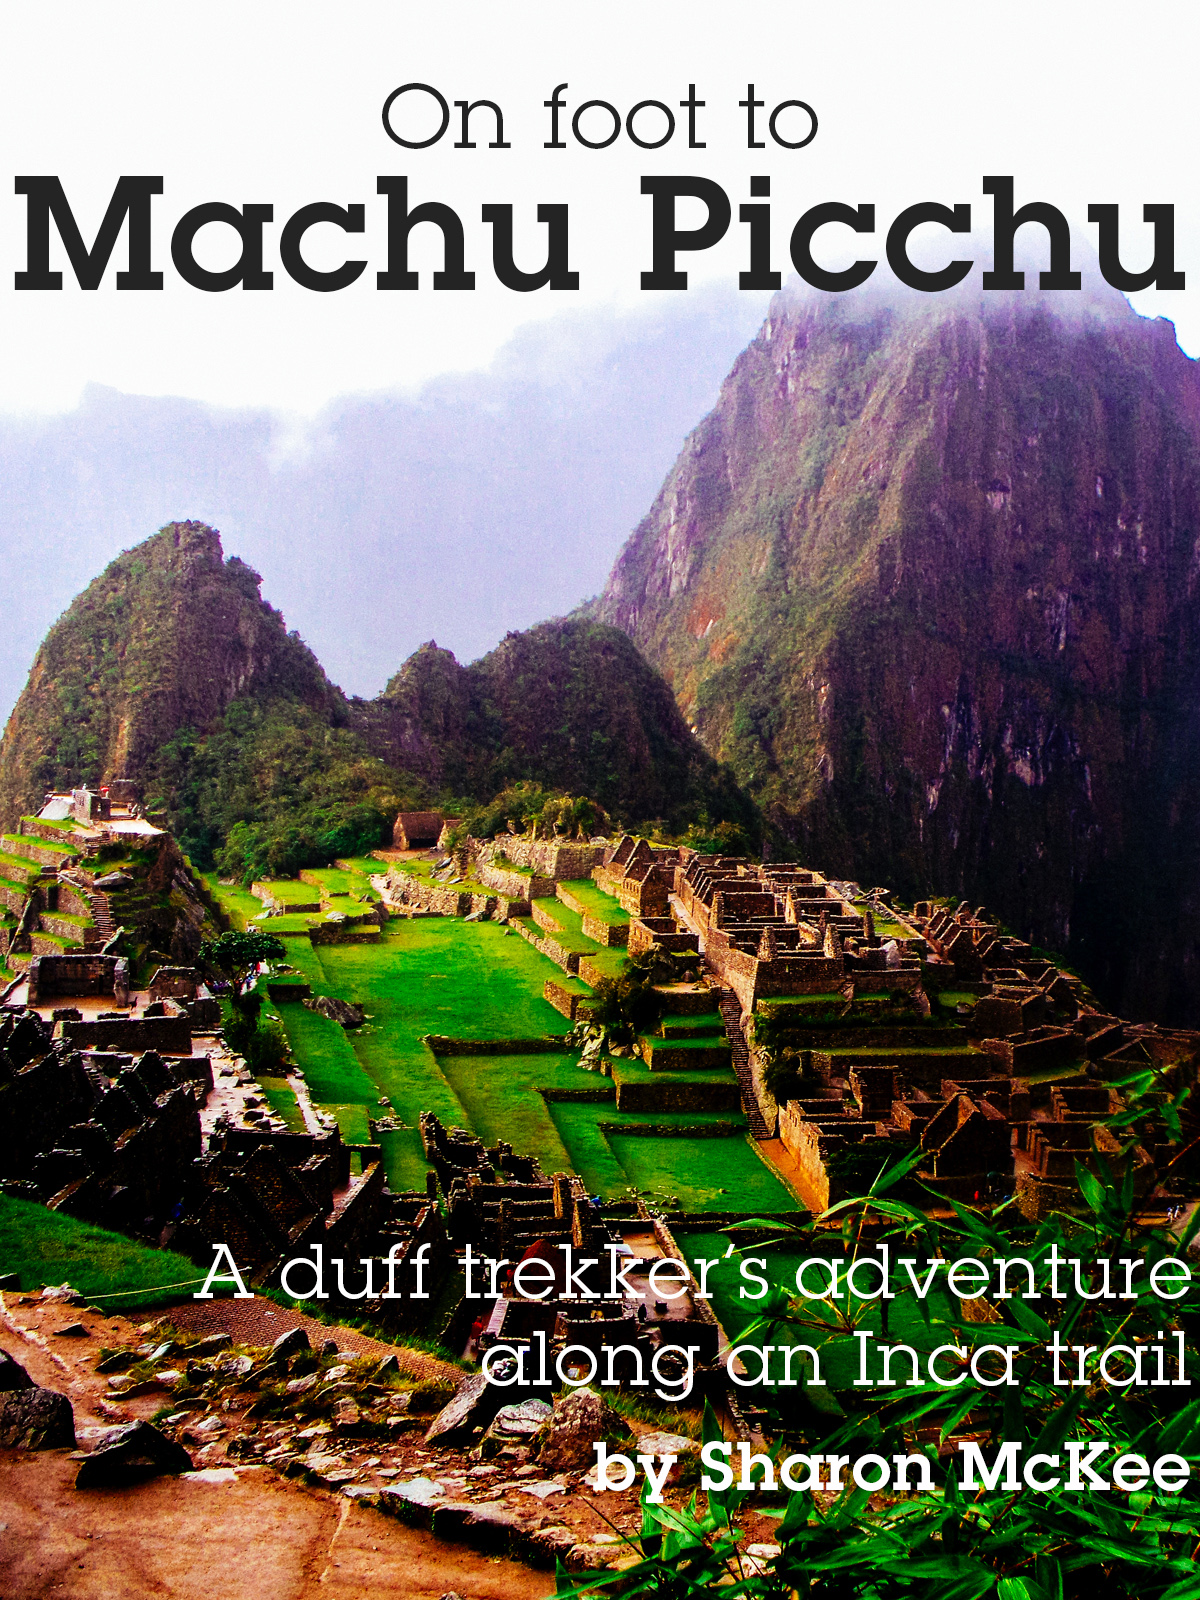 On Foot to Machu Picchu